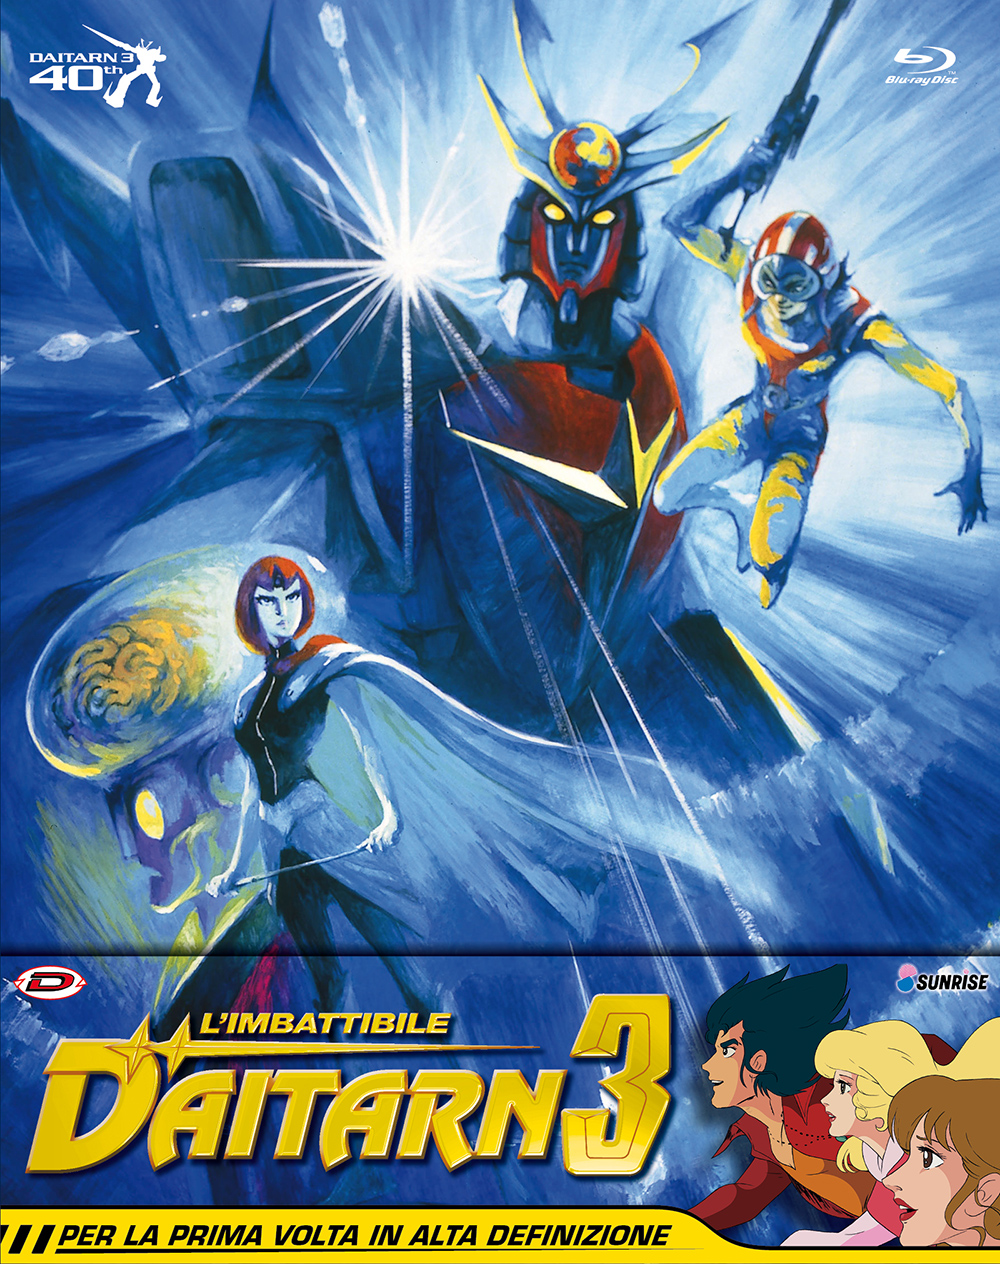 COF.L'IMBATTIBILE DAITARN 3 BOX-SET (EPS.01-40) (5 BLU-RAY)